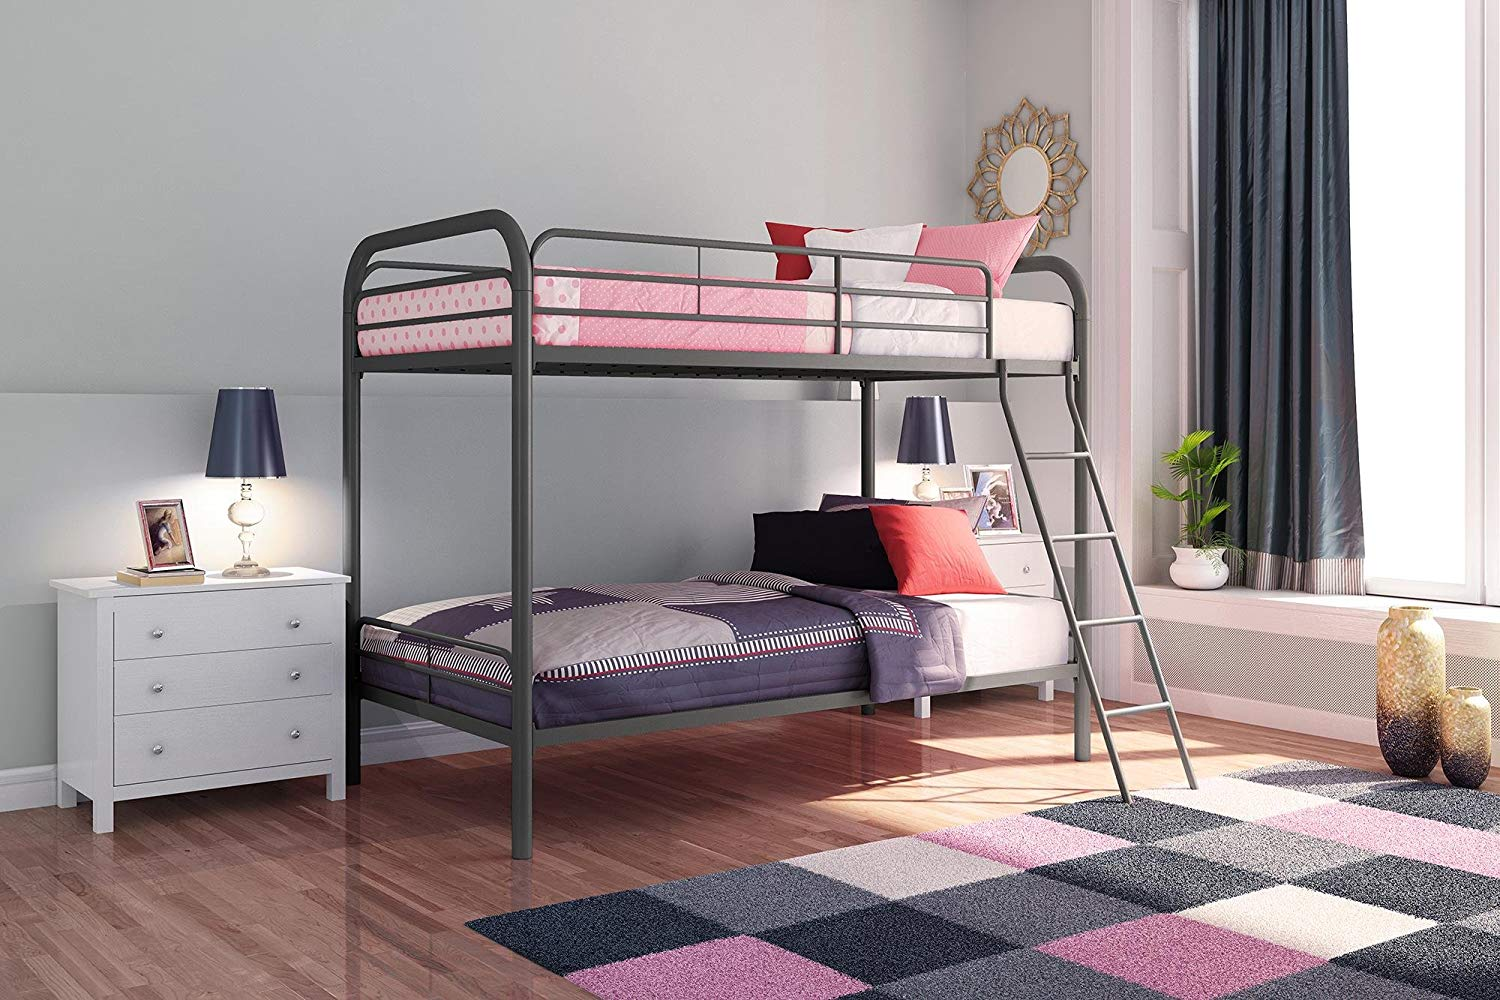 Picture of: Cheap Bunk Beds Under 200 For Kids 2020 Toddler Bunks Under 200